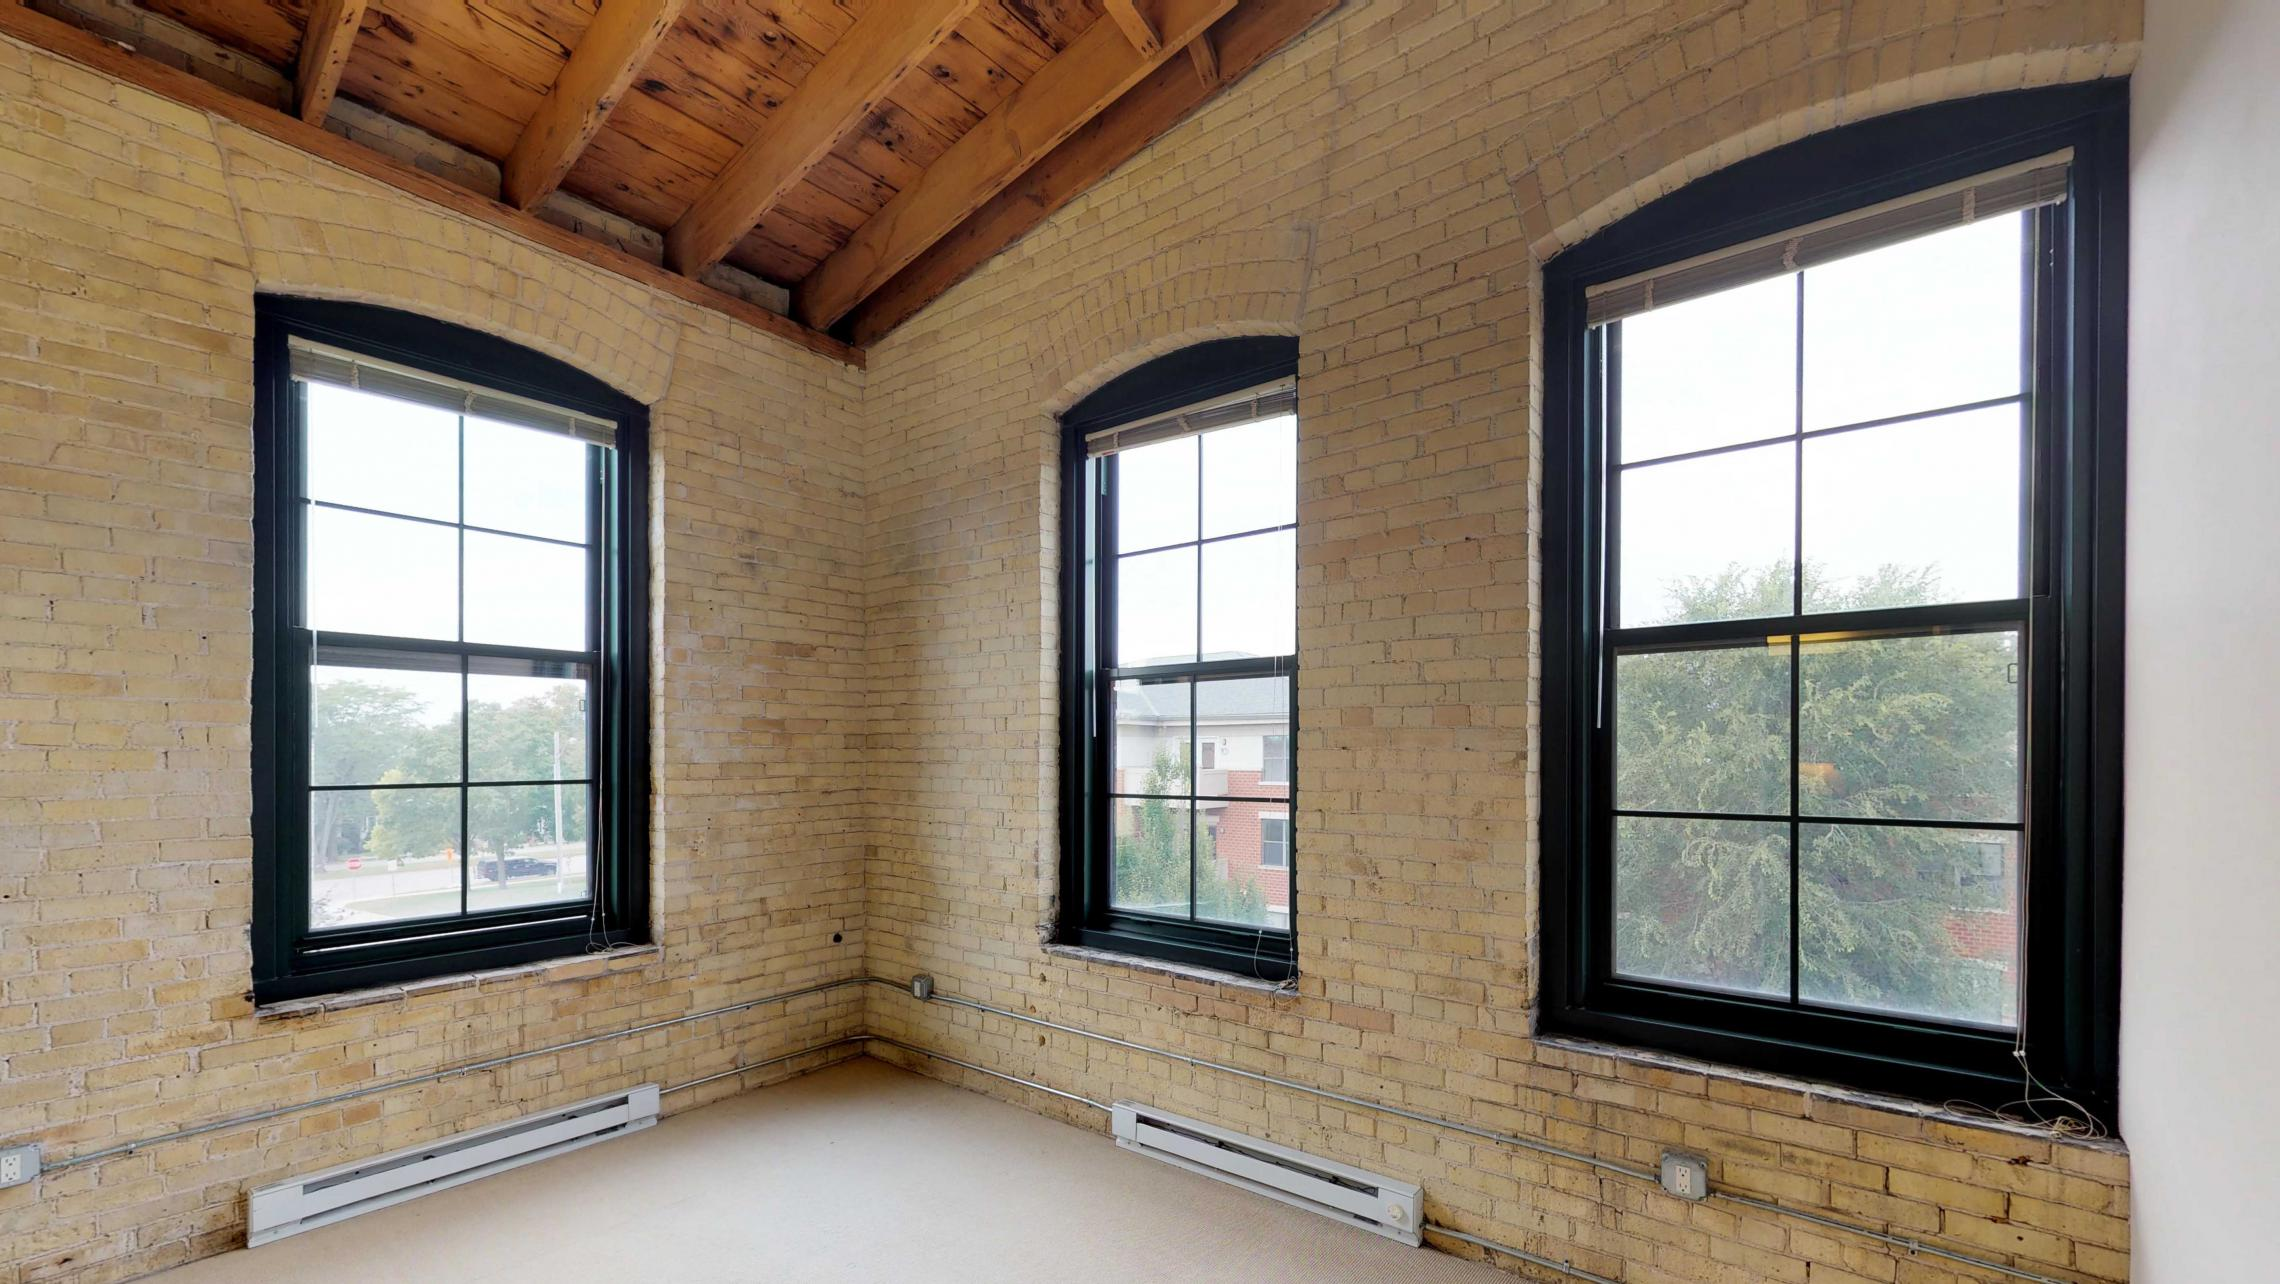 Tobacco-Lofts-Apartments-E312-Two-bedroom-Corner-Downtown-Madison-Historic-Yards-Exposures-Windows